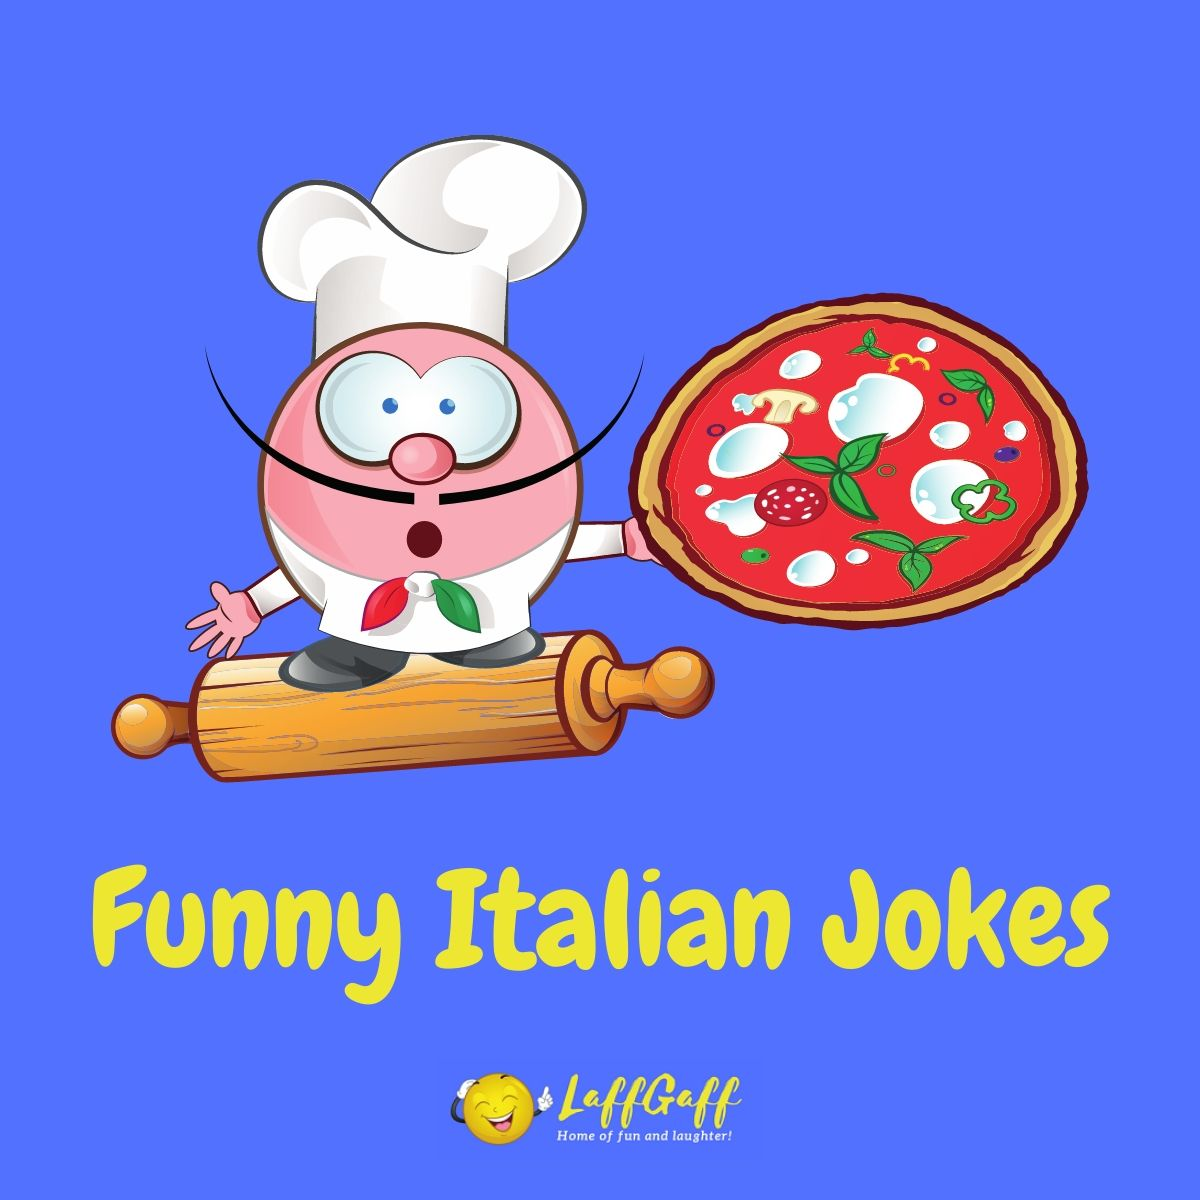 Featured image for a page of funny Italian jokes and puns.